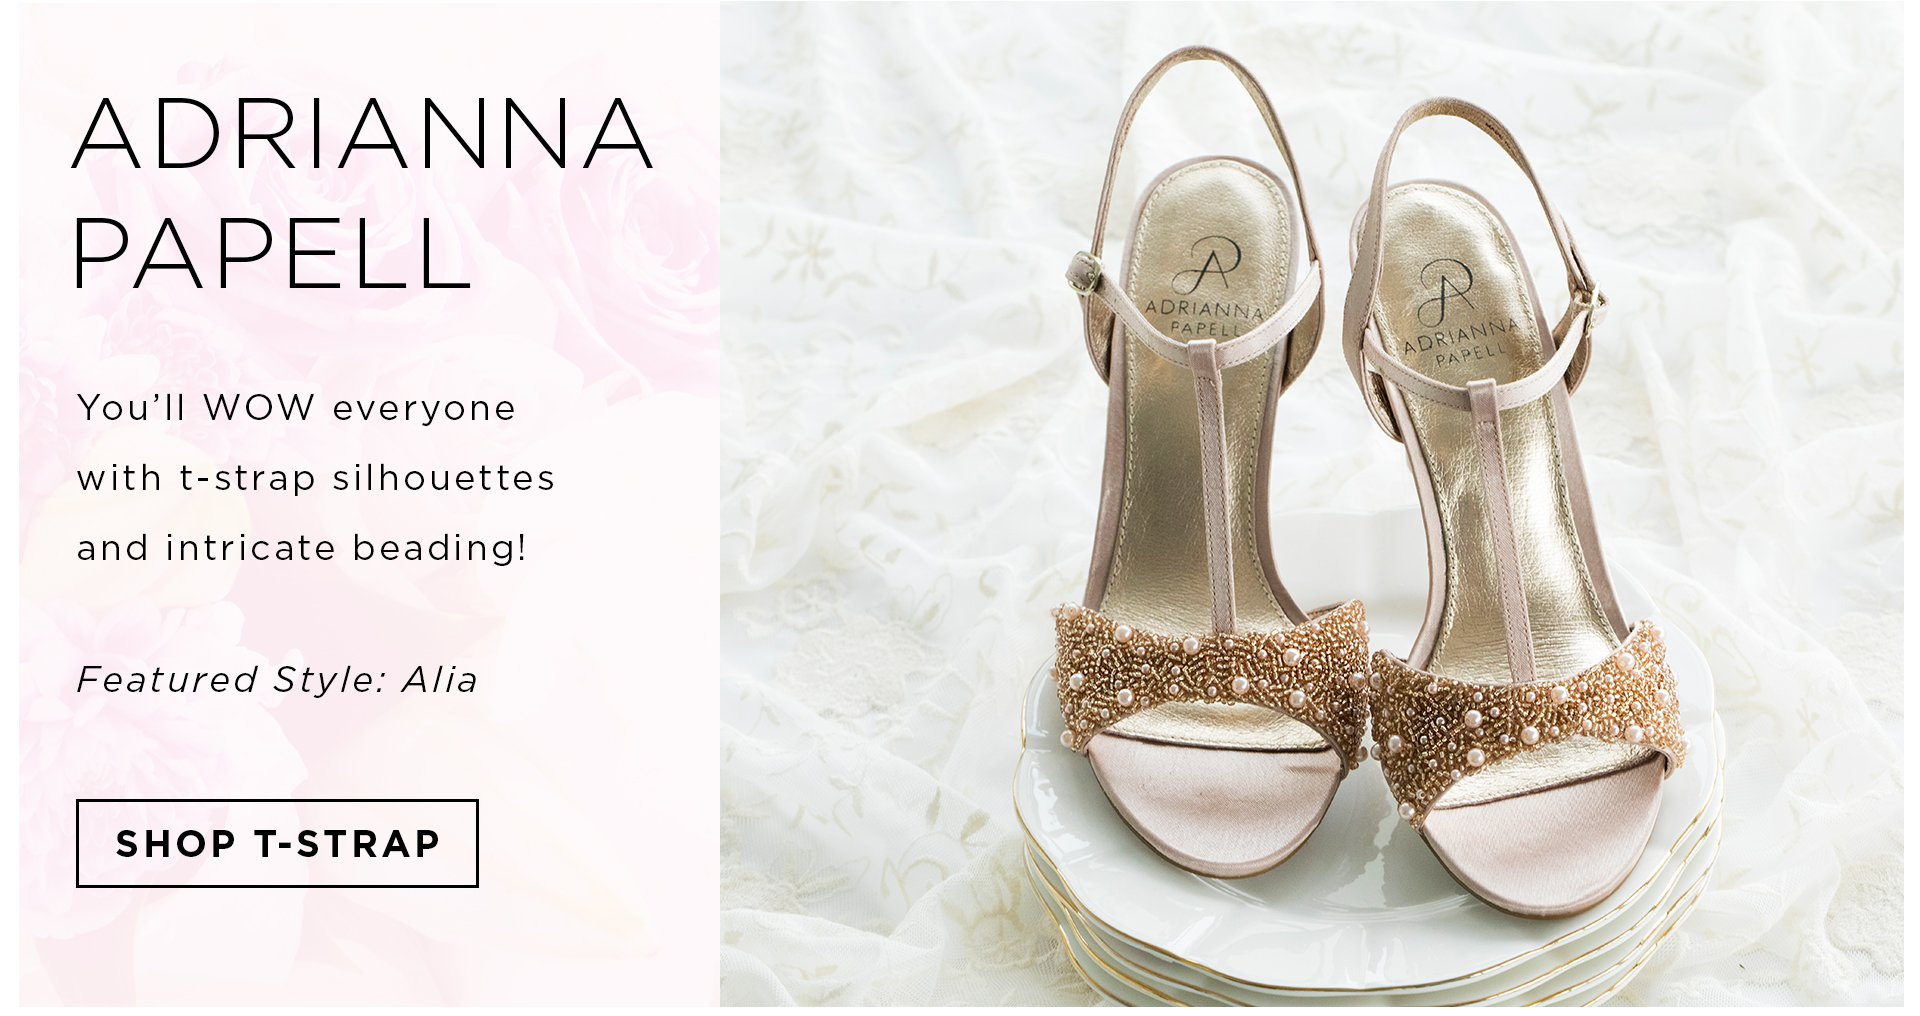 ded26ad51c3a Header  Wedding Footwear Favorites Badgley Mischka Shop Nina Adrianna  Papell ...